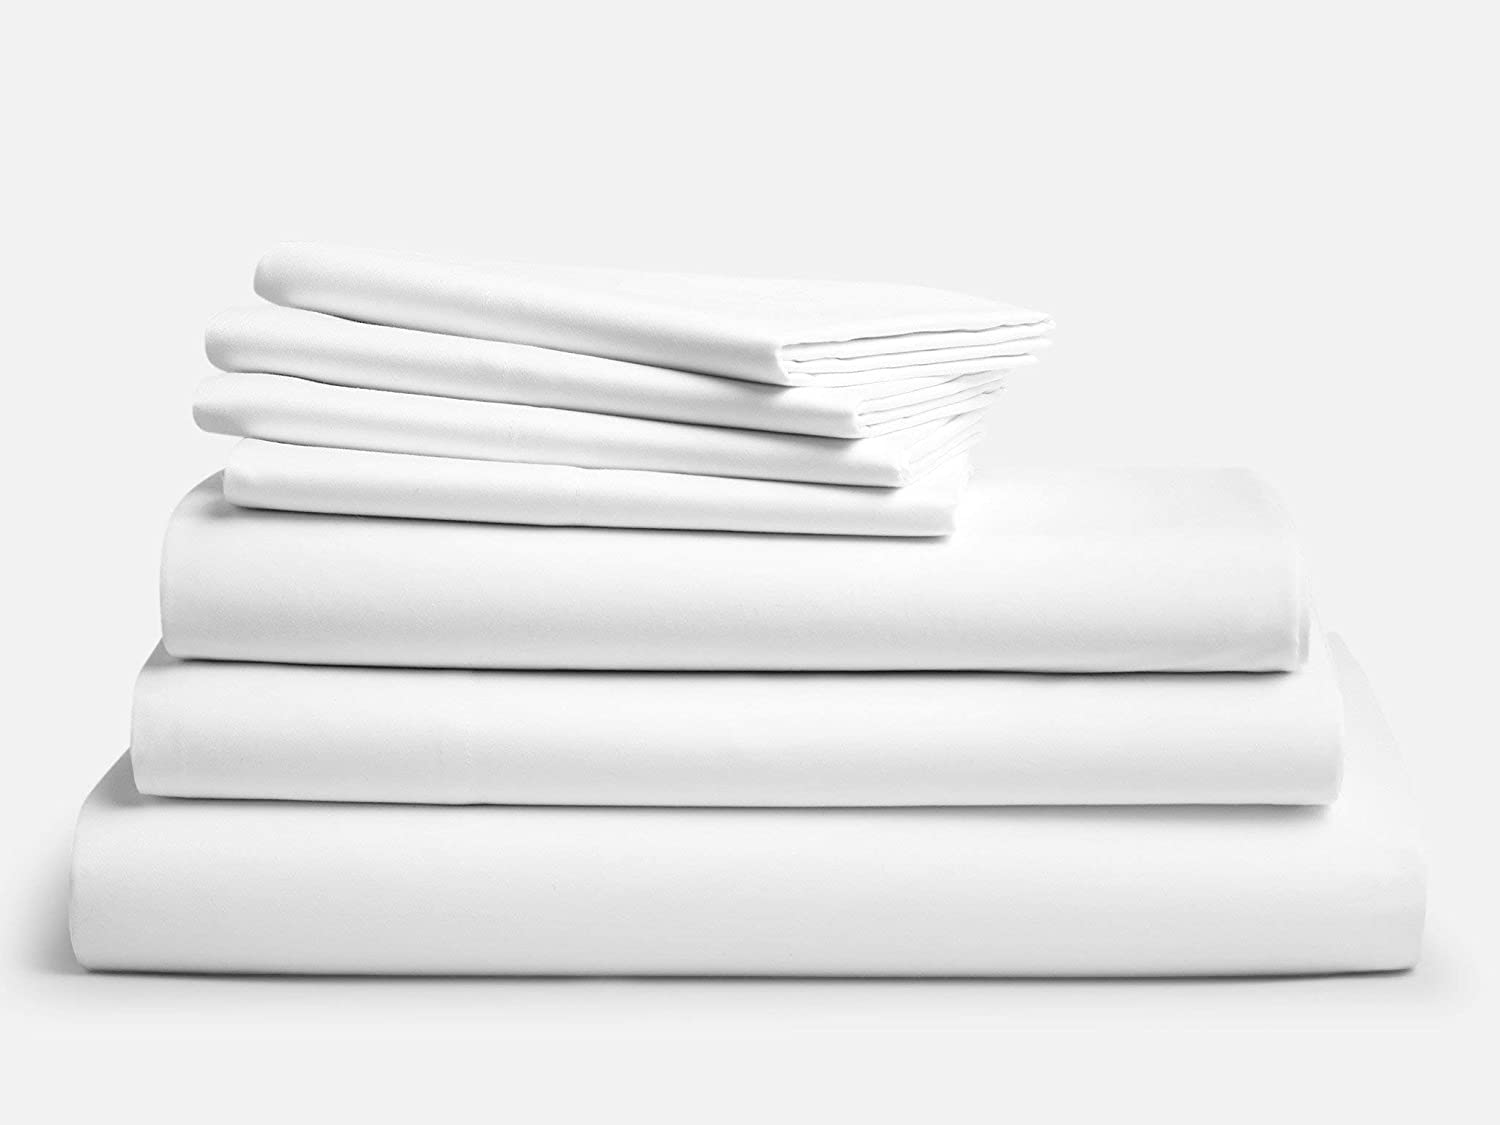 Brooklinen Luxe 7 Piece Bed Sheet Set - 100% Long Staple Cotton - King White bed sheets Bed Sheets Review: Best bed sheets on the market today 61ns8 2BKFFXL